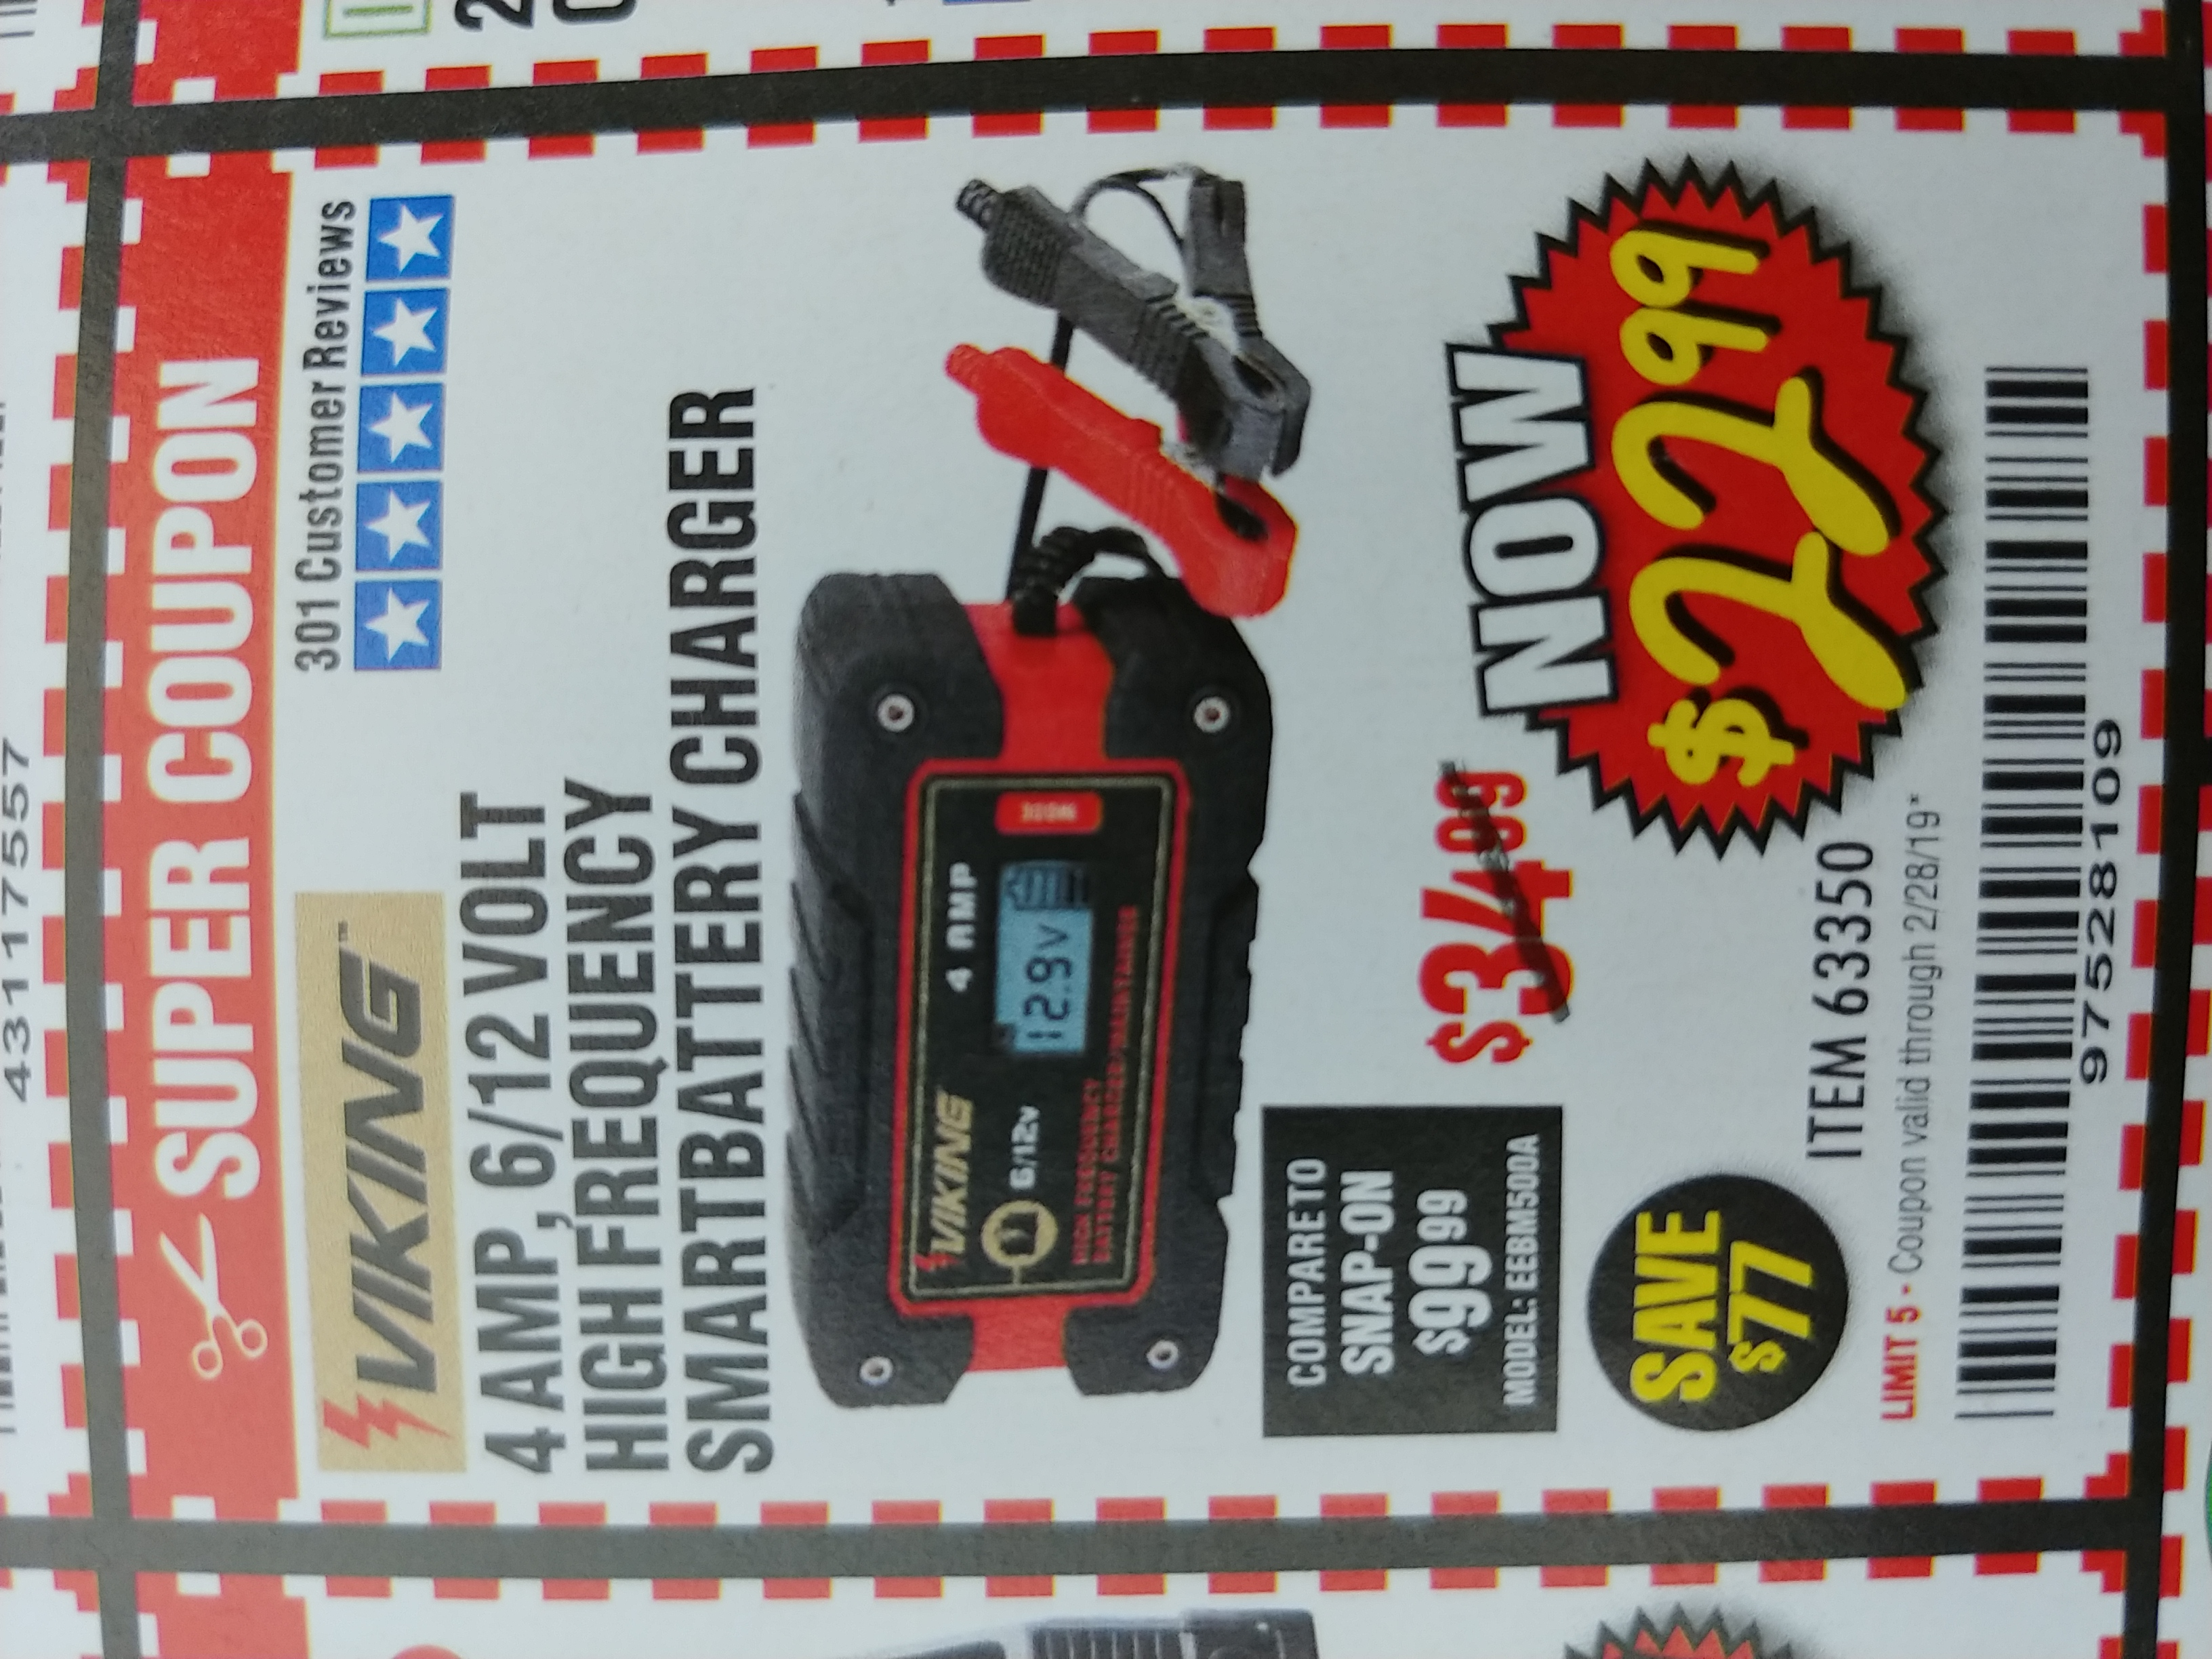 Harbor Freight 4AMP 6/12V HIGH FREQUENCY SMART BATTERY CHARGER coupon